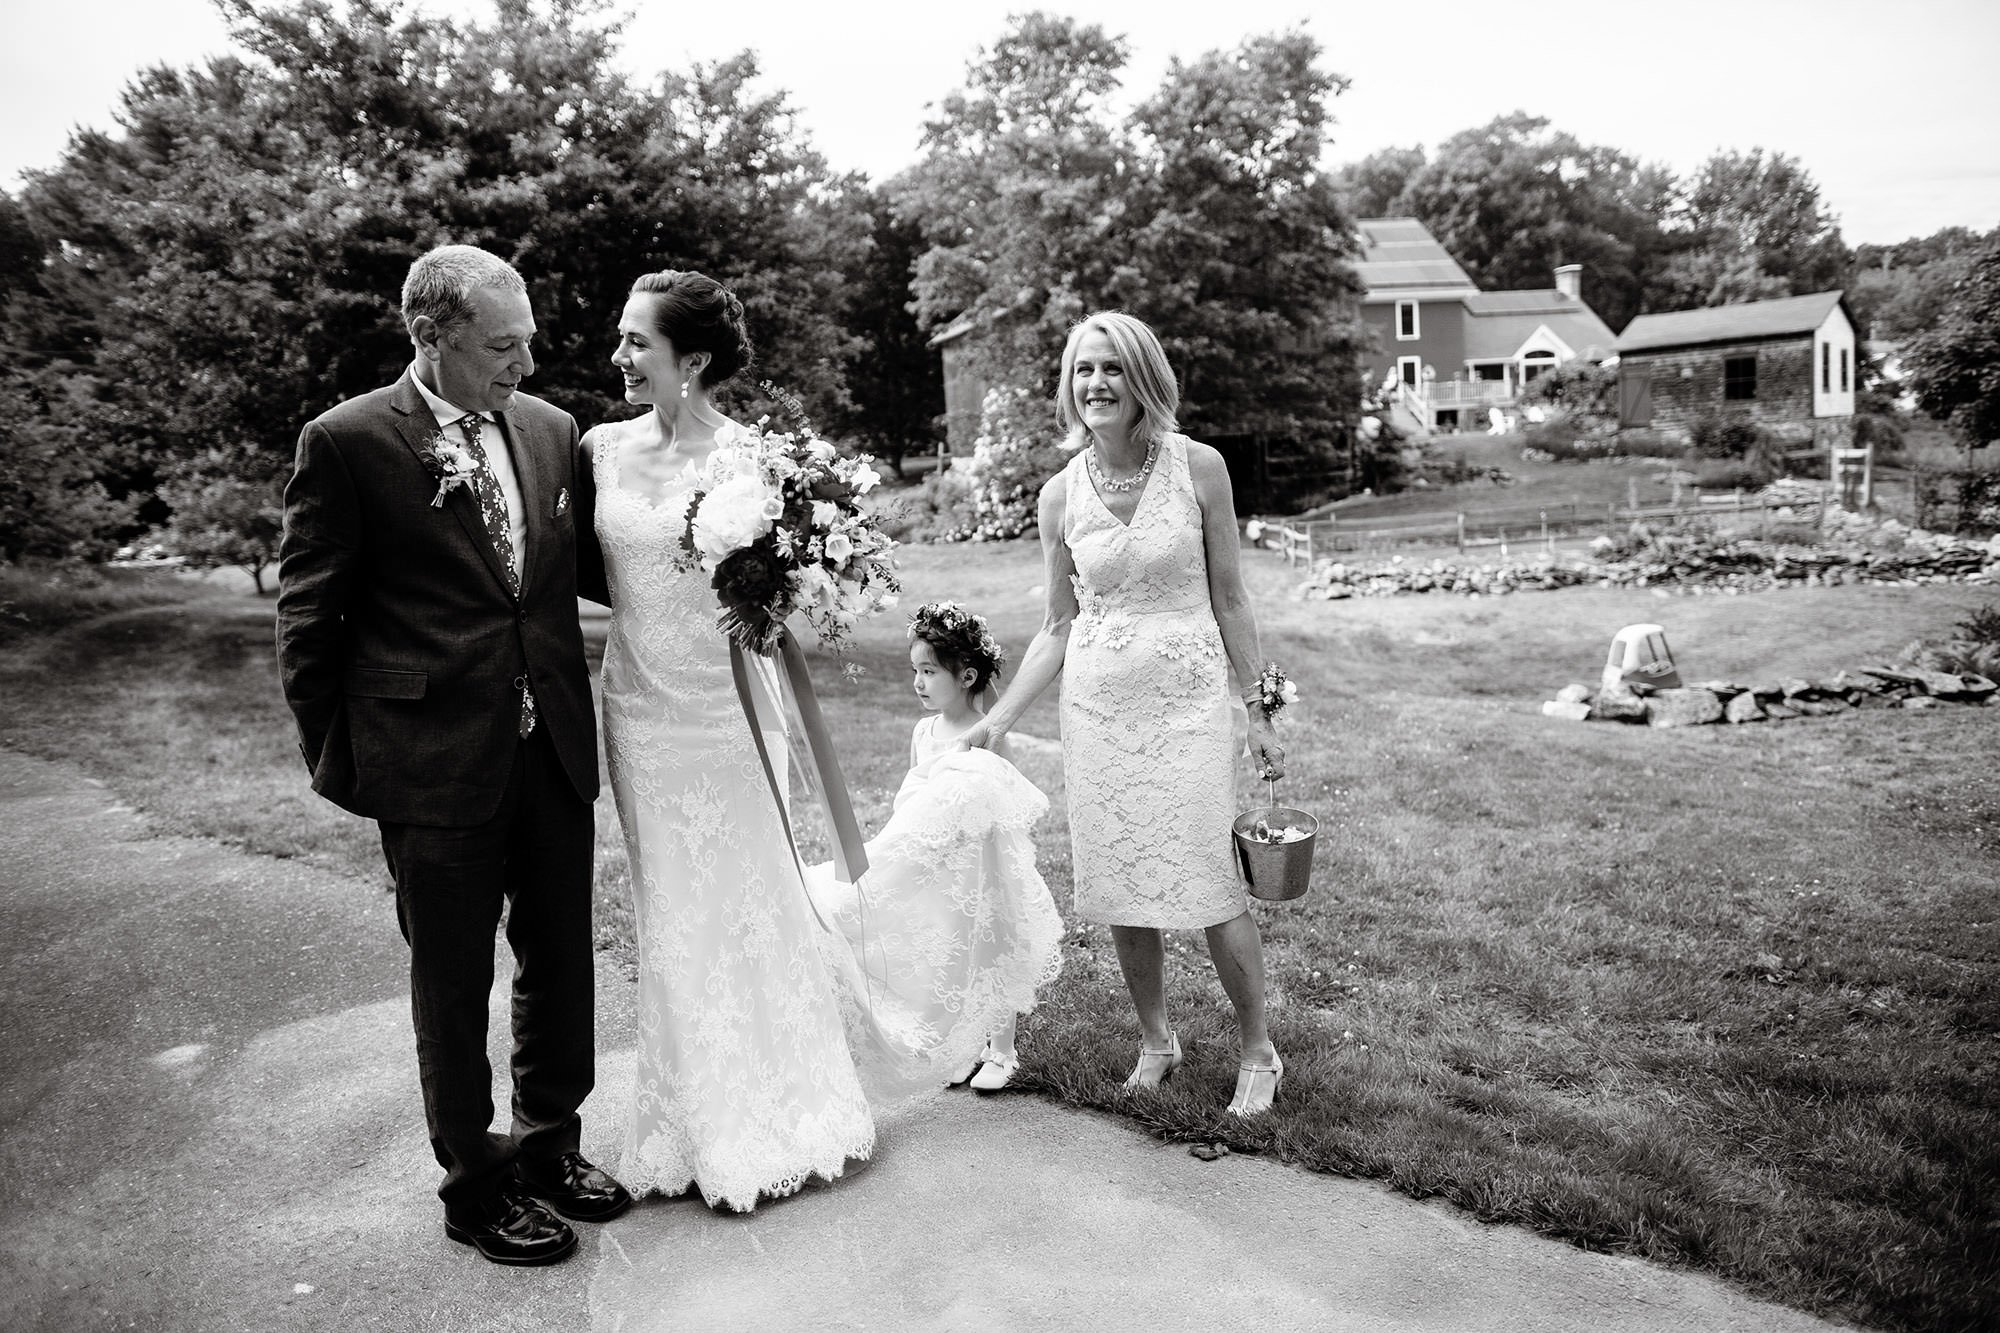 The bride and her parents prior to their wedding ceremony.